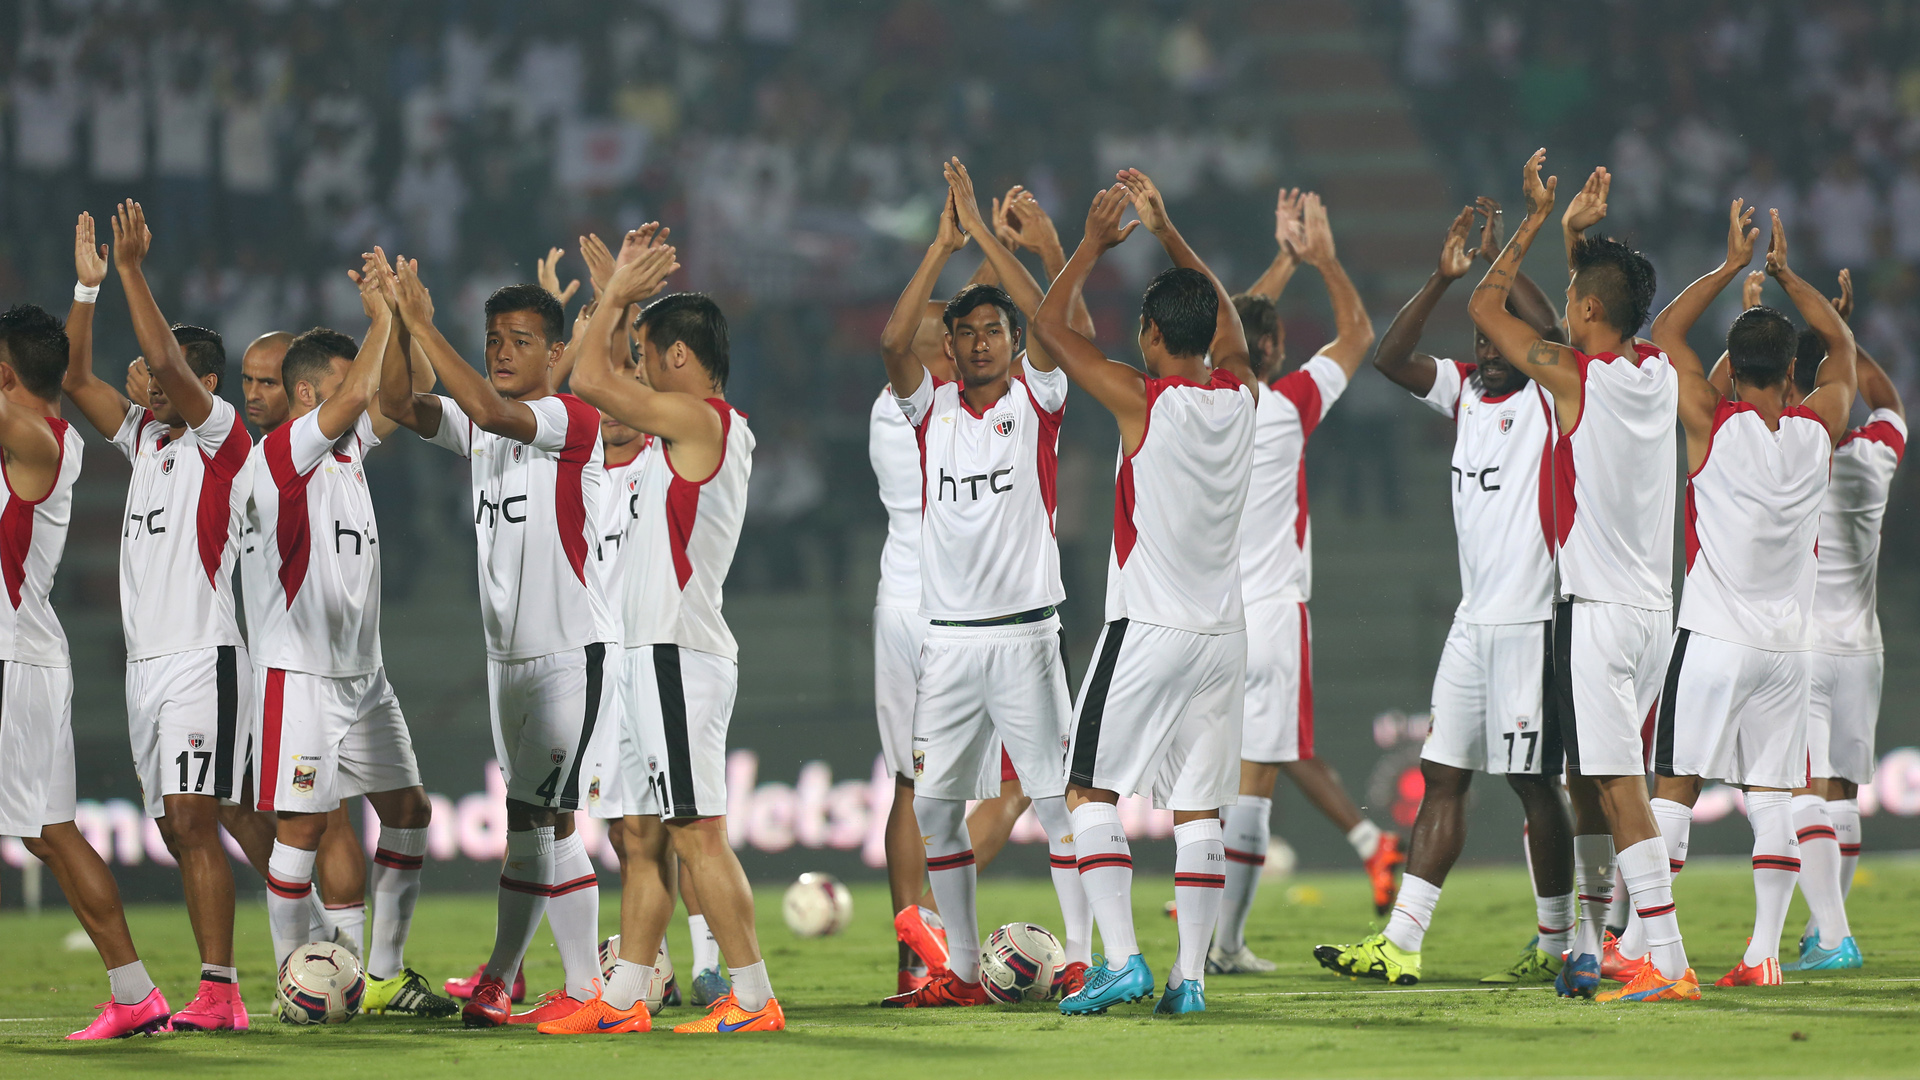 NorthEast United FC Players waves towards the crowd during the warm up session before the match 38 of the Indian Super League (ISL) season 2 between NorthEast United FC and Kerala Blasters FC held at the Indira Gandhi Stadium, Guwahati, India on the 15th November 2015. Photo by Deepak Malik / ISL/ SPORTZPICS